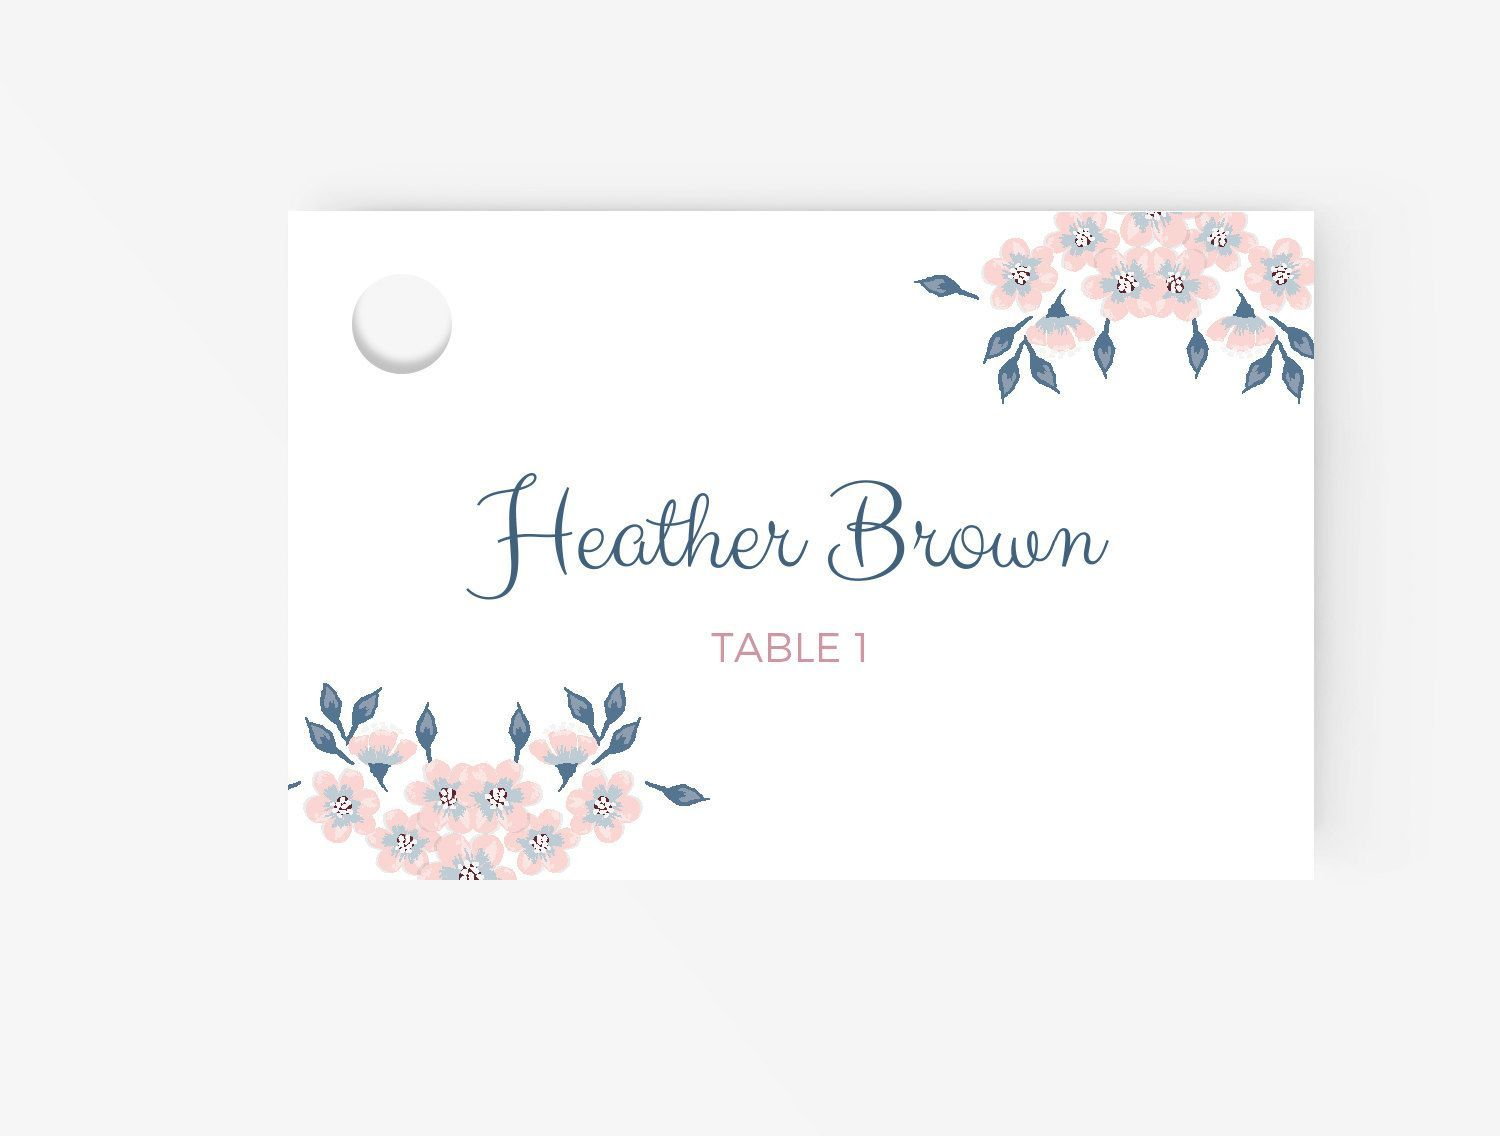 005 Free Place Card Template Ideas Cards Excellent Printable Intended For Free Place Card Templates 6 Per Page Best Template Ideas Brollop